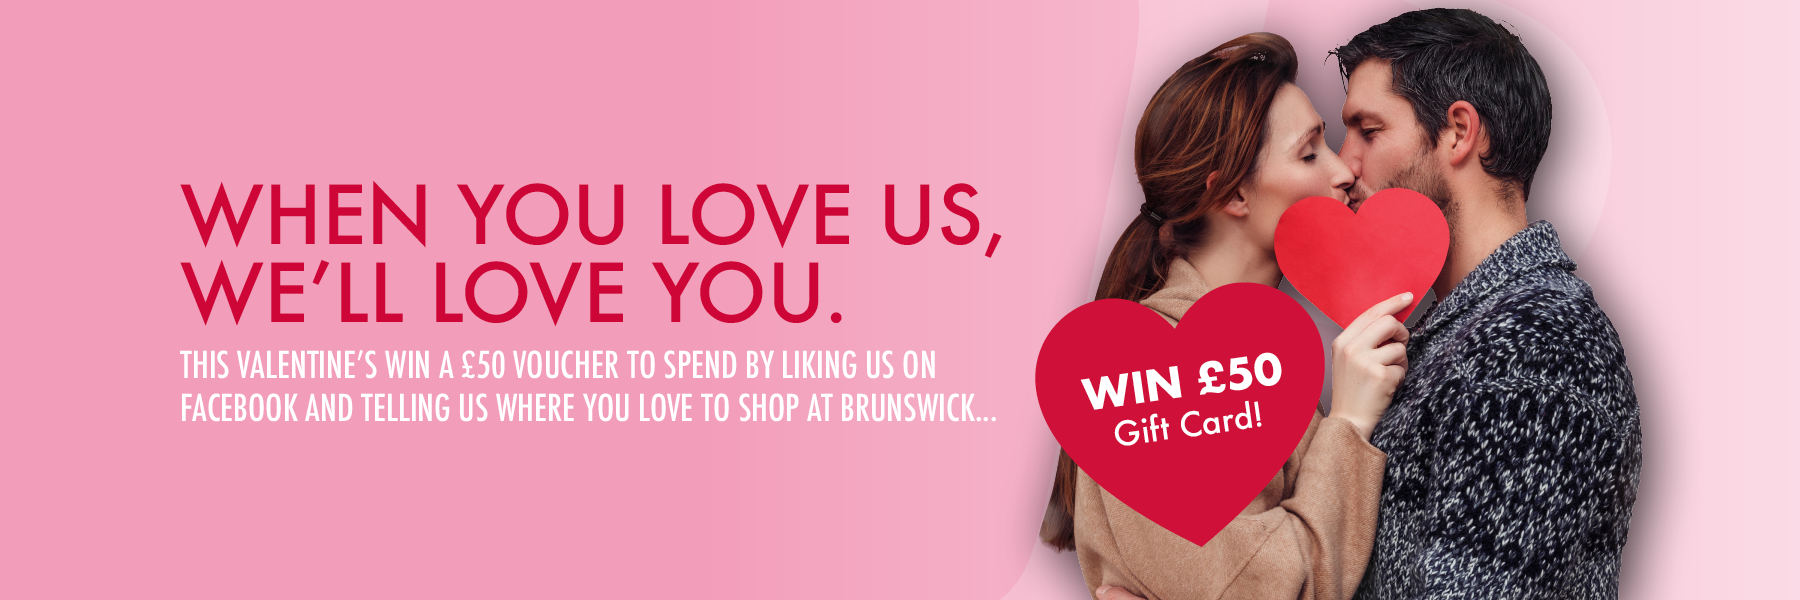 Win £50 Gift Card this Valentine's